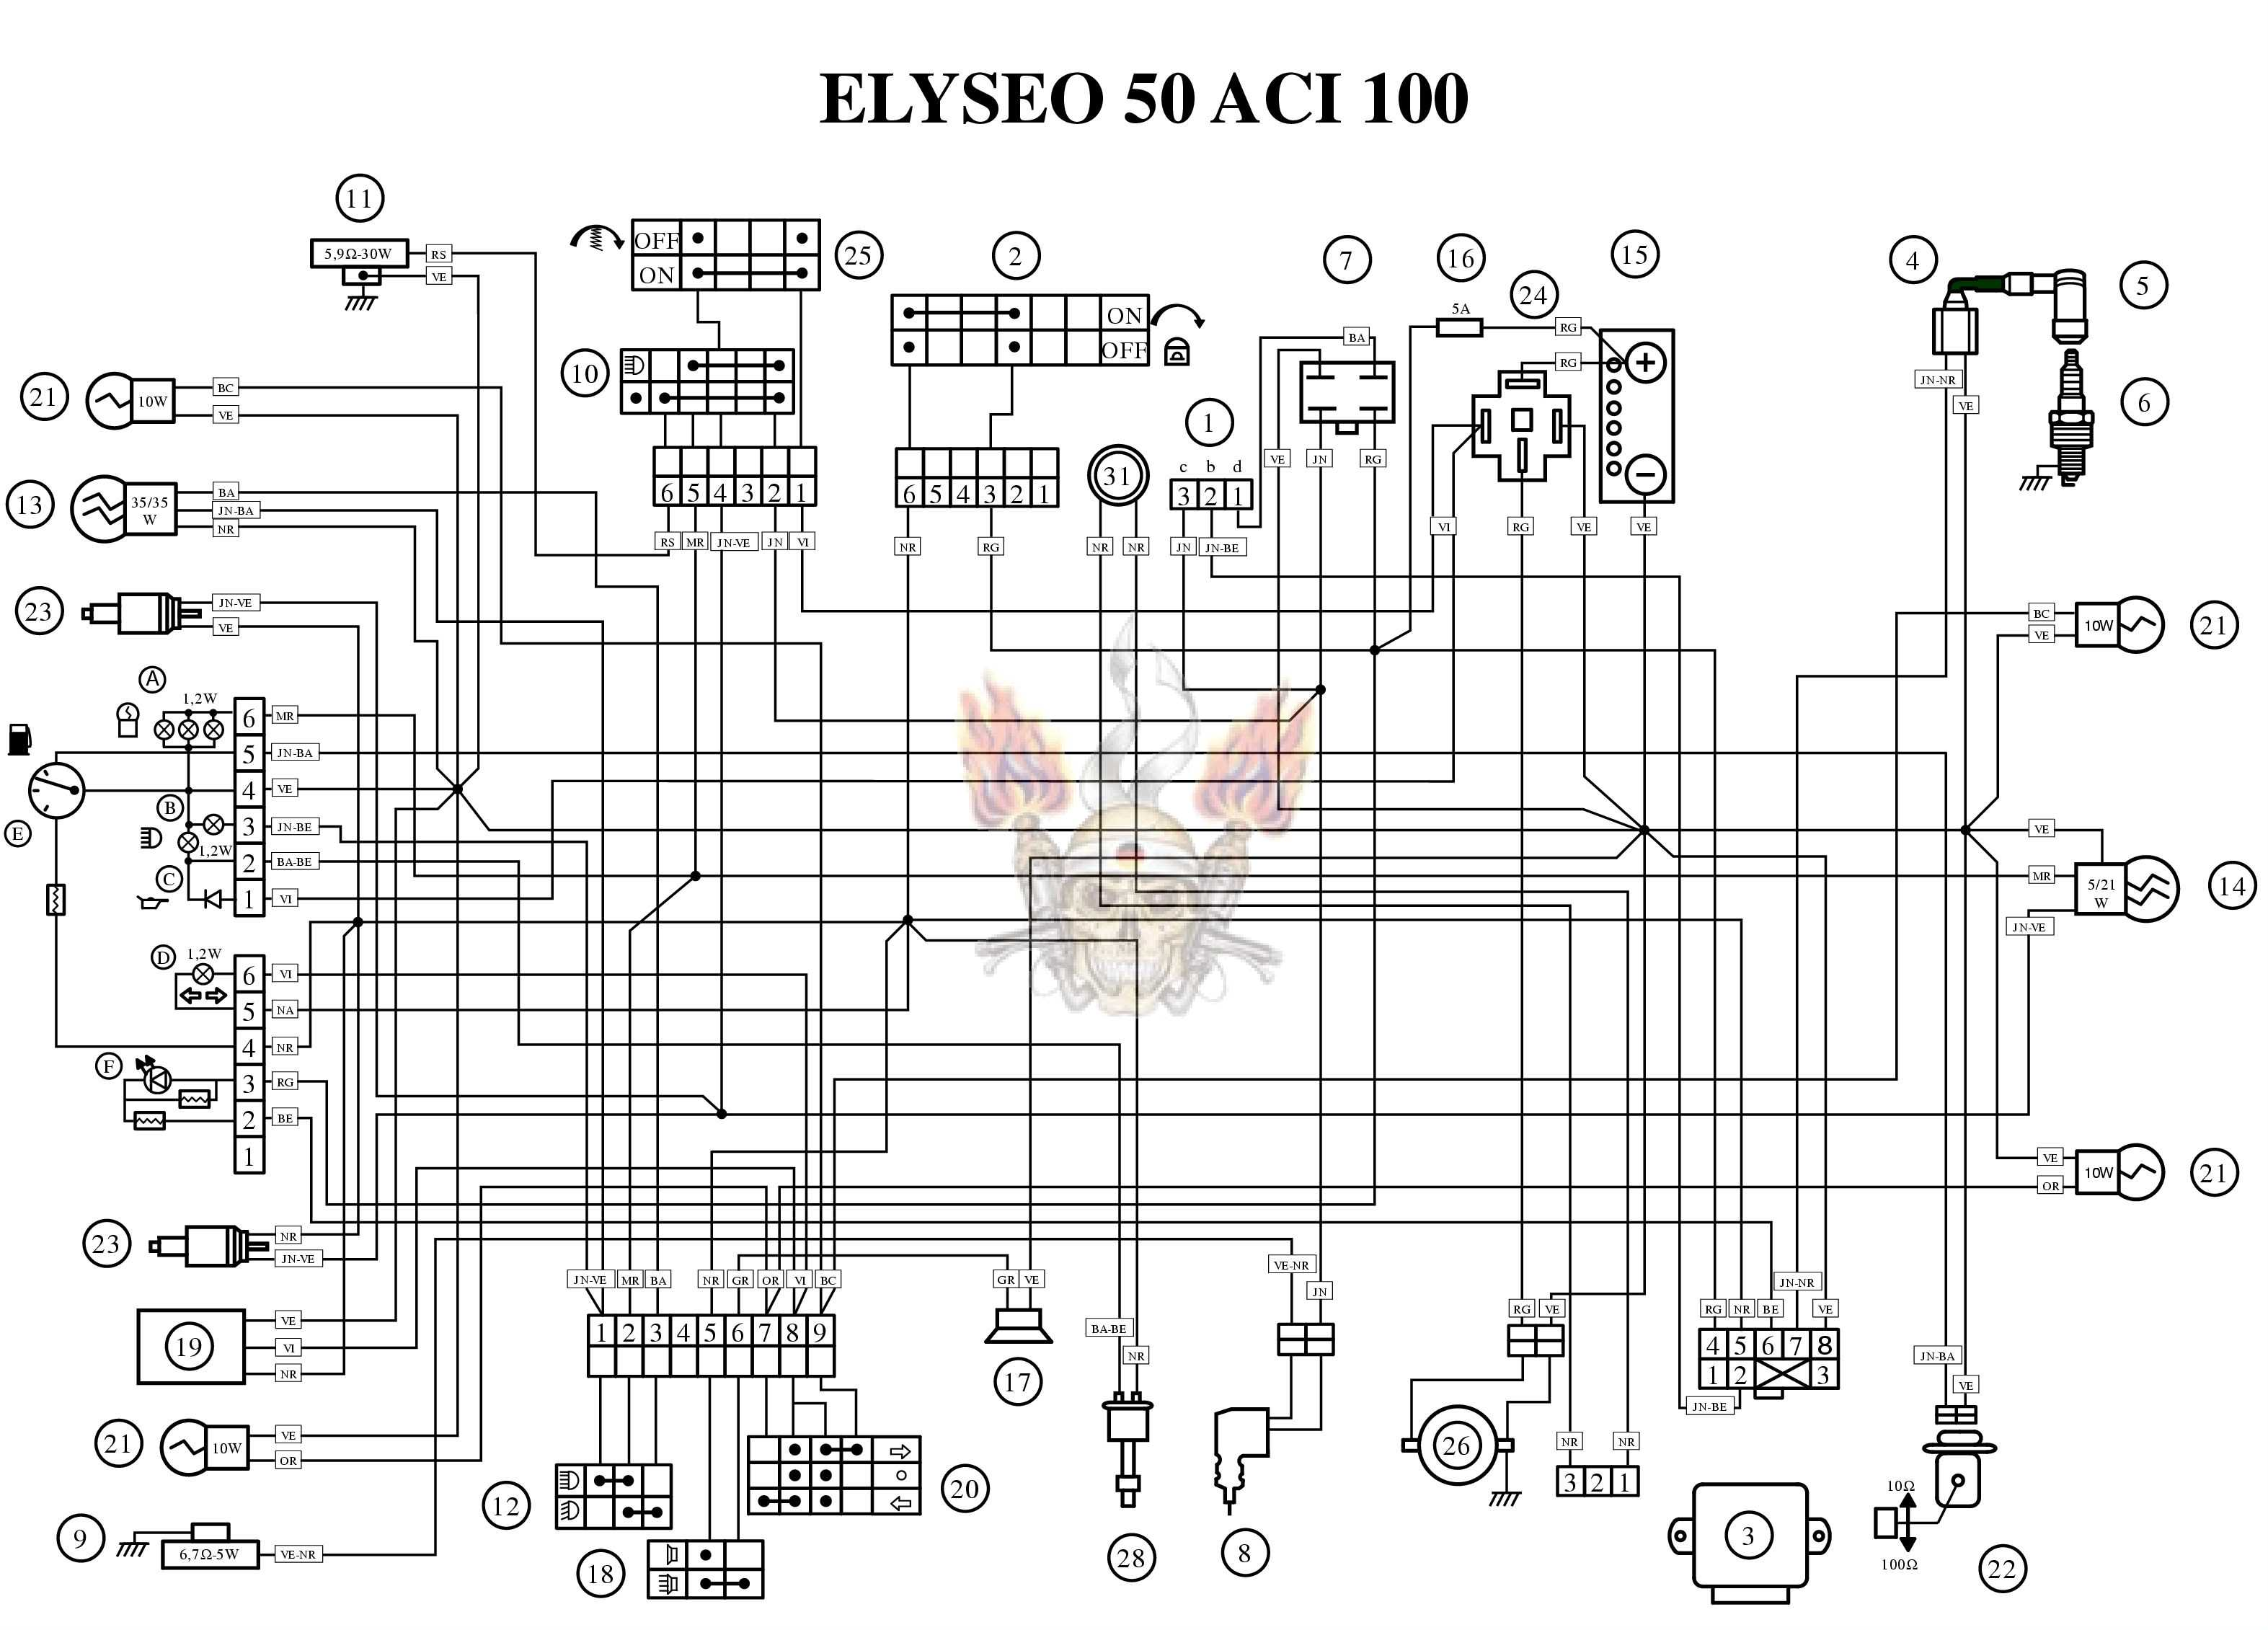 Charming peugeot 207 wiring diagram download photos best image stunning peugeot 207 wiring diagram contemporary everything you fandeluxe Images